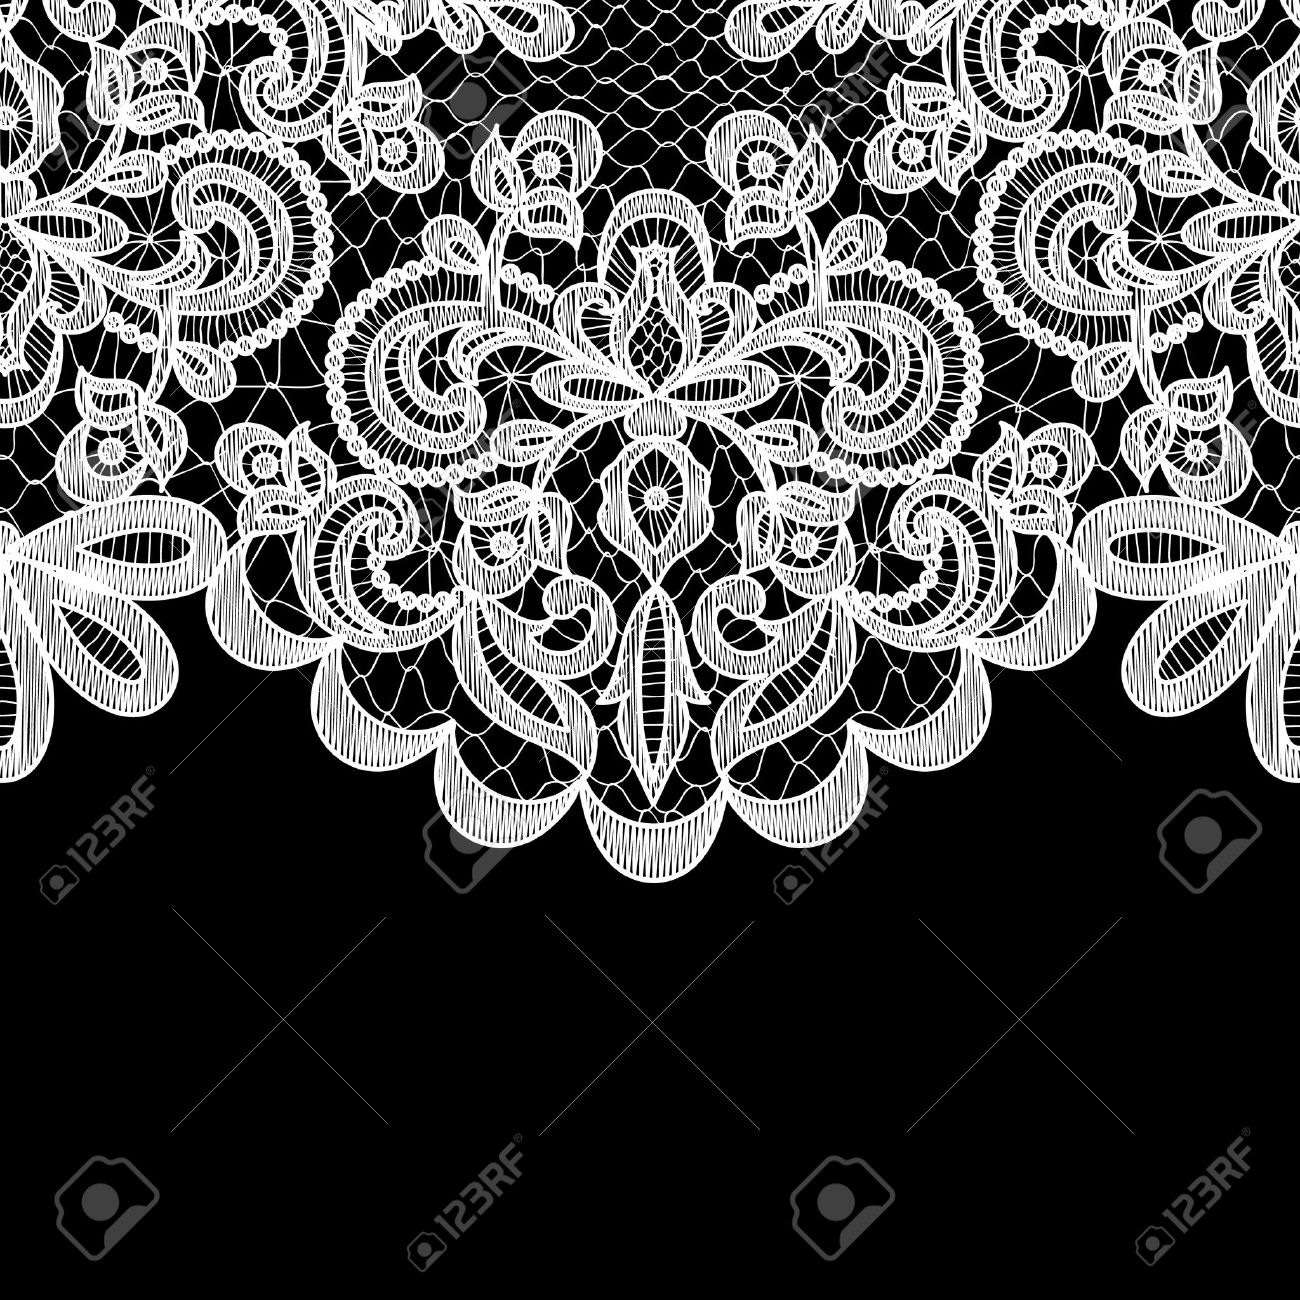 Wedding invitation or greeting card with lace border on black vector wedding invitation or greeting card with lace border on black background stopboris Images